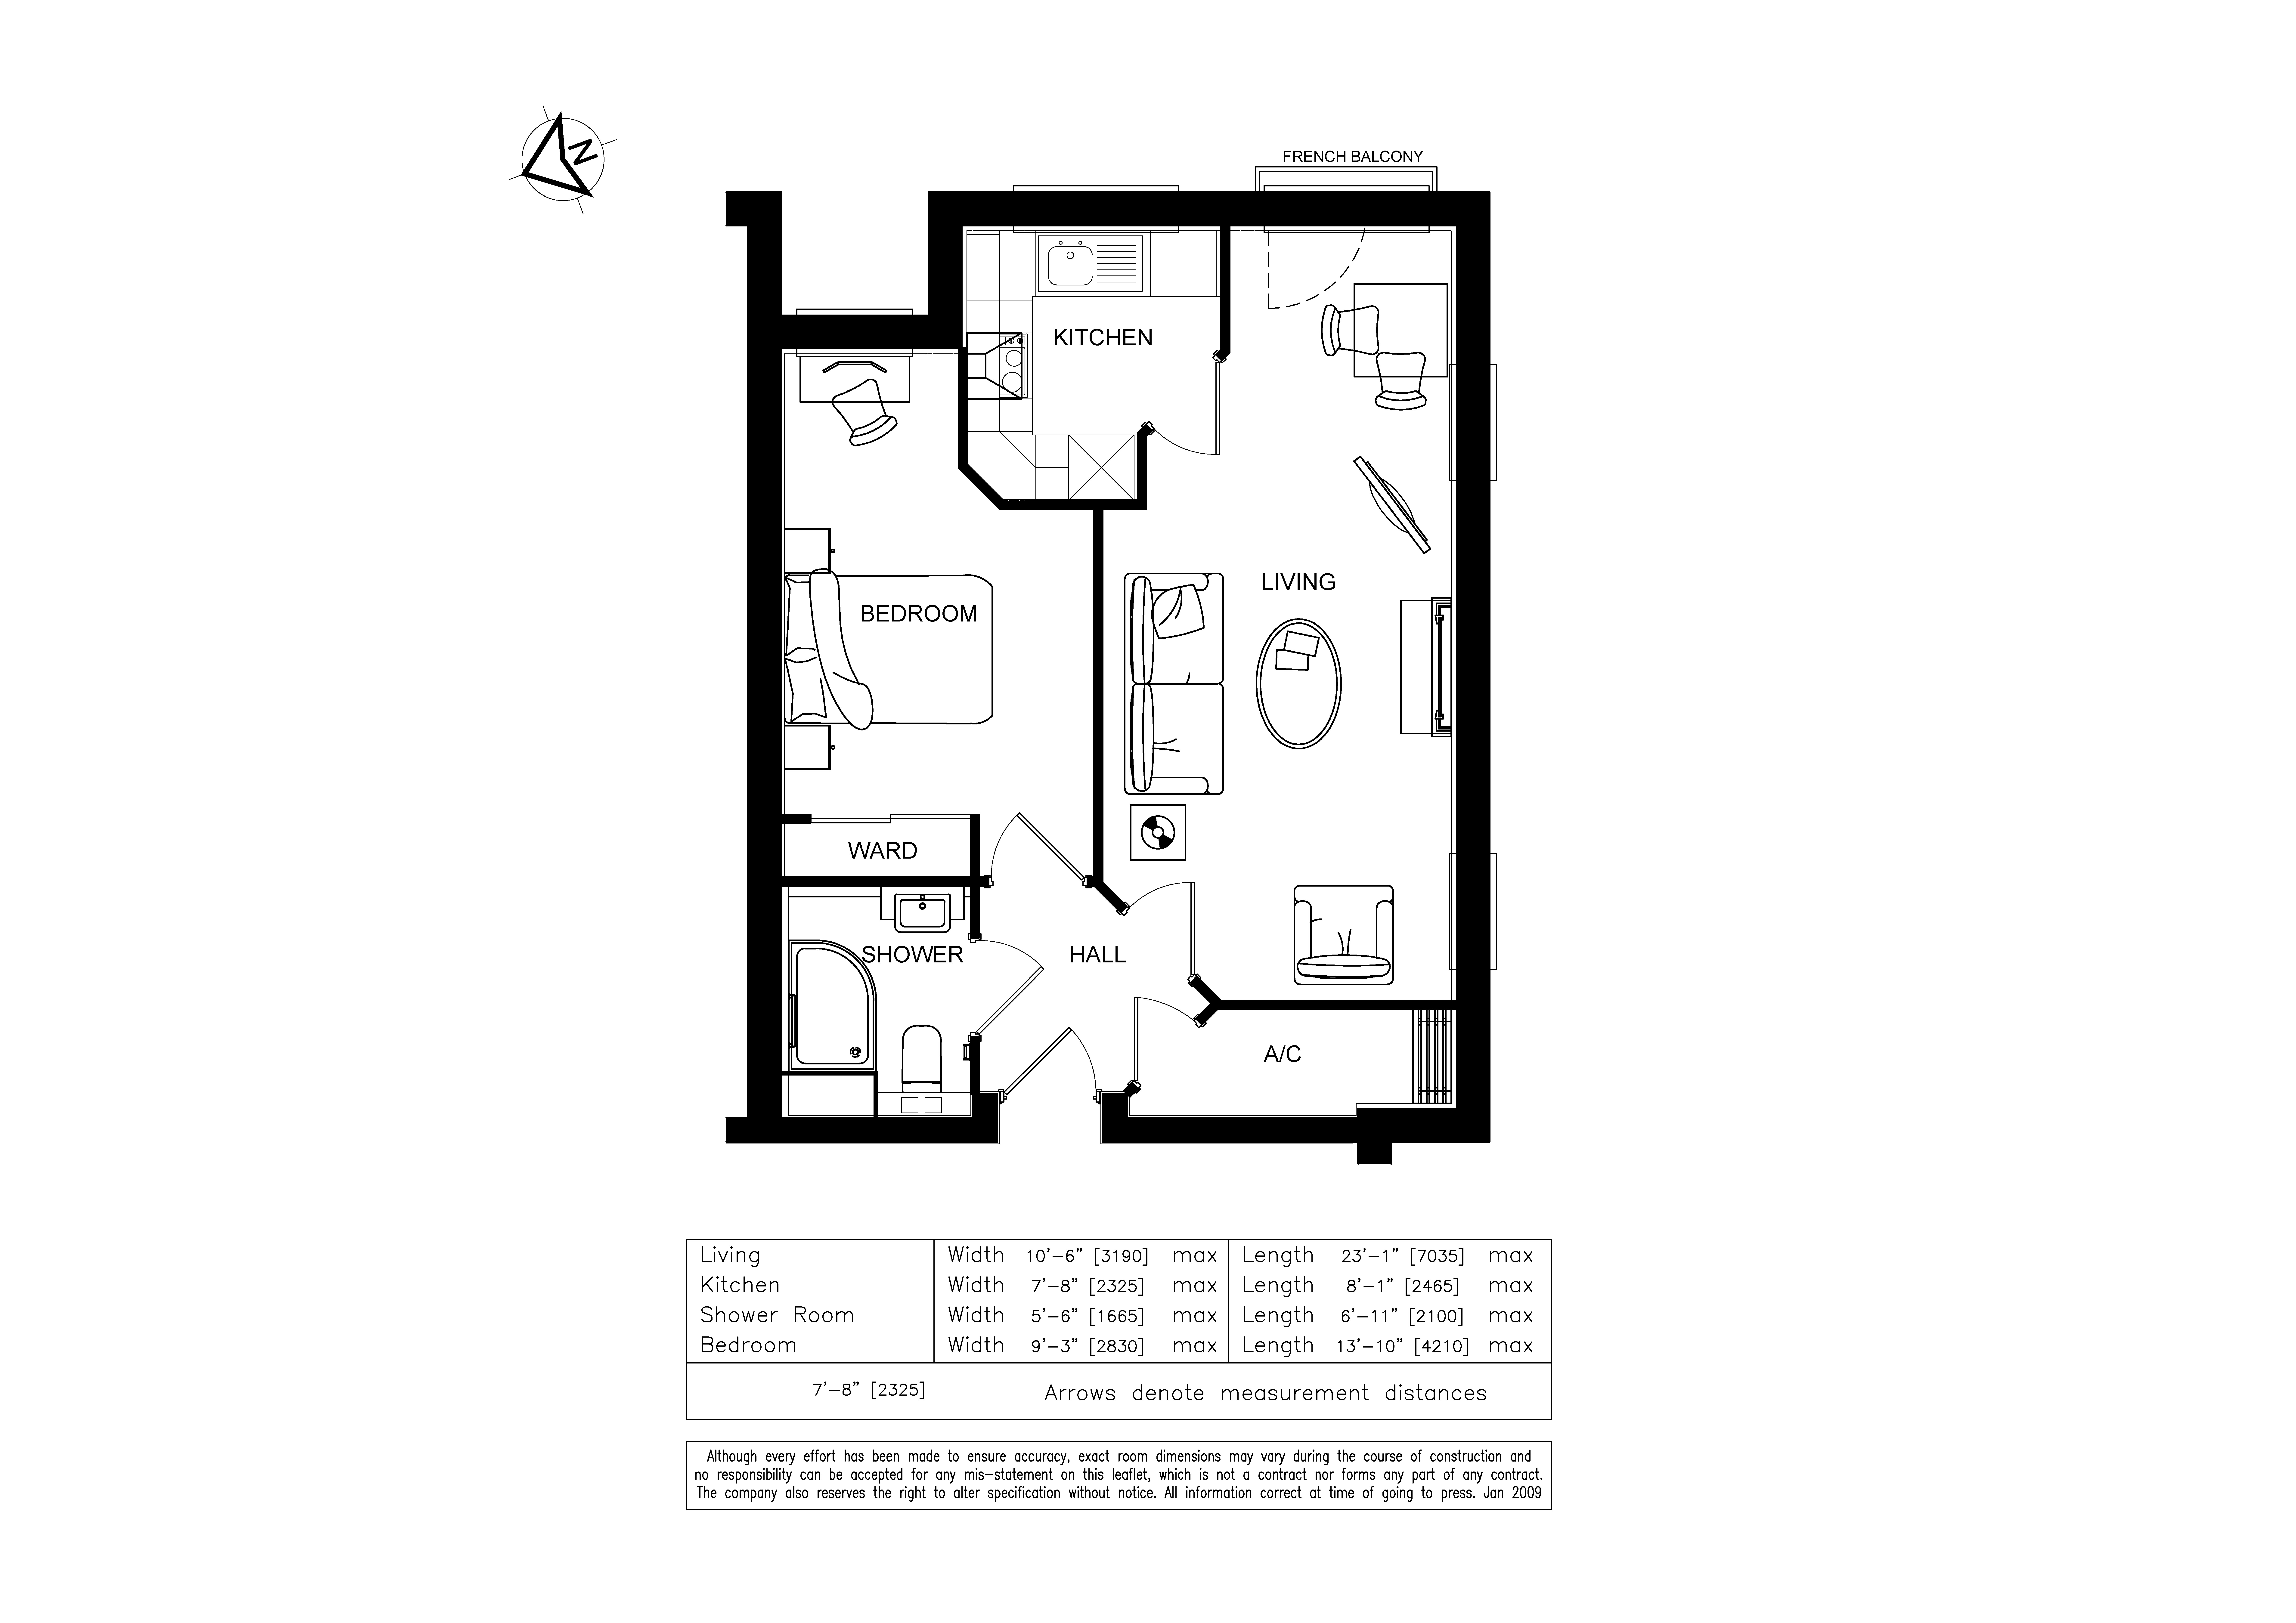 Houghton Hall Floor Plan furthermore 2 Bedroom Retirement Apartment In Newbury 8 additionally 4 Bedroom Flat Central Park Lodge 54 58 Bolsover Street London W1w as well Blue Sky Lofts Apartments Z185qmy further Log Home Designs Floor Plans Small Log Homes Designs This C4b97885607d6bf6. on west lodge apartments